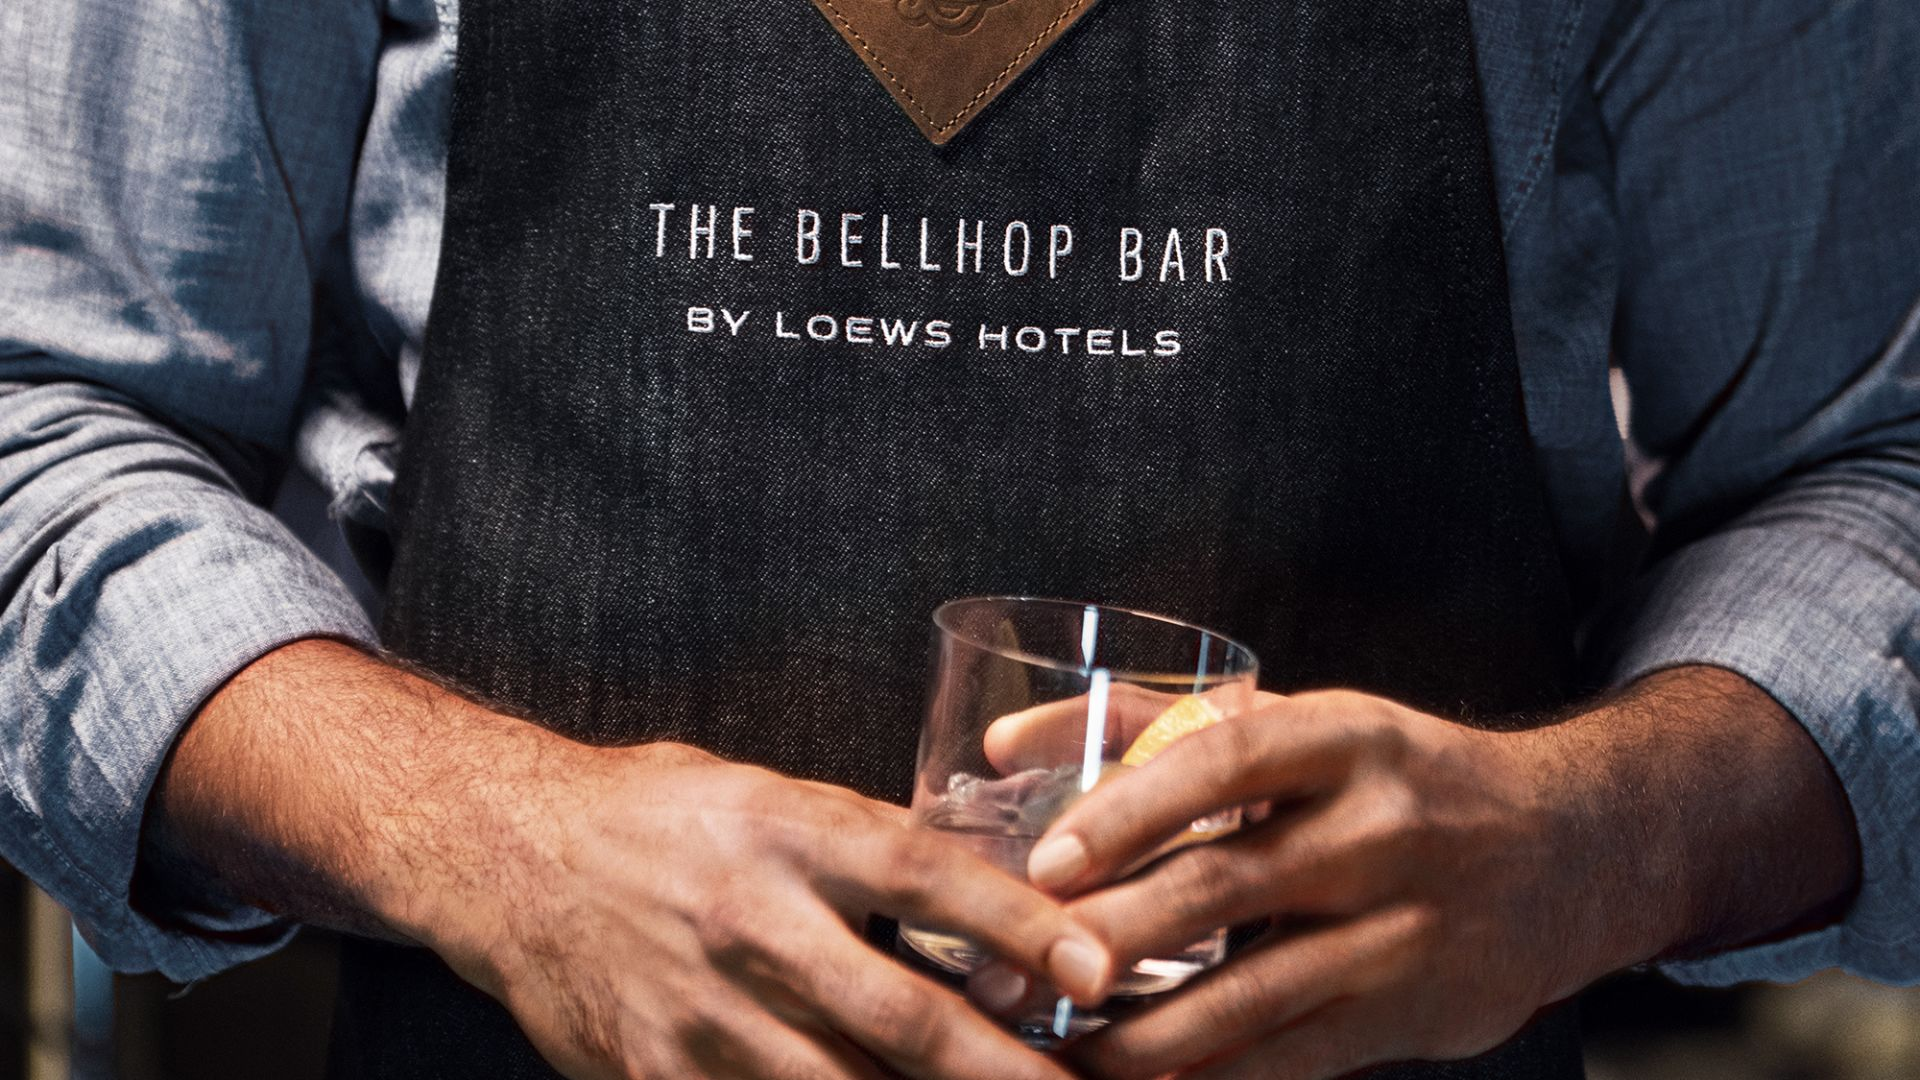 <strong> That's the Spirits | Let us unpack you a cocktail every night at The Bellhop Bar </strong>|A Wonderful|Place to Wander|Cheers to That